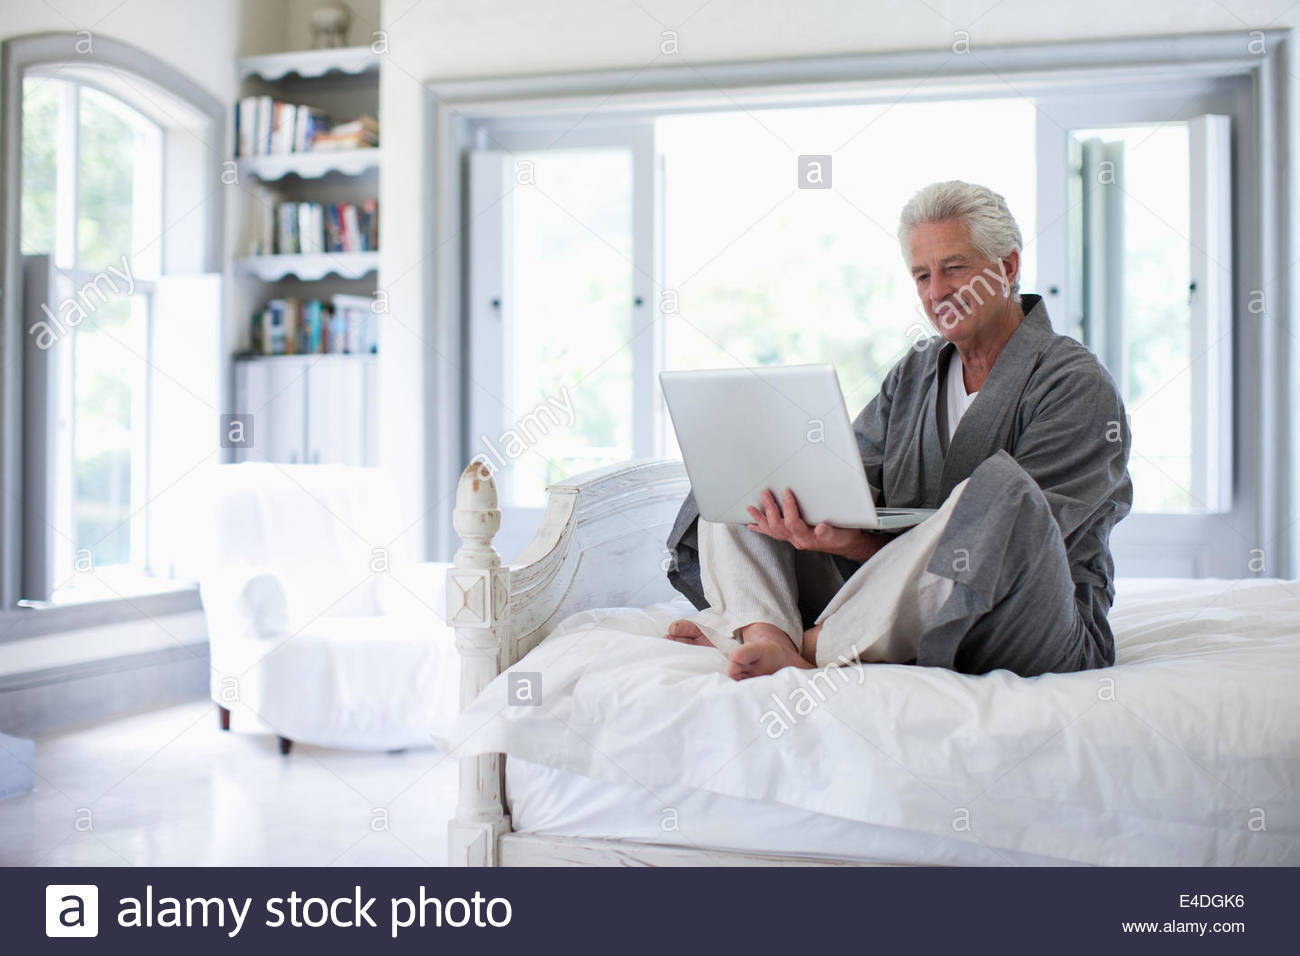 Senior man in bathrobe using laptop in bedroom - Stock Image